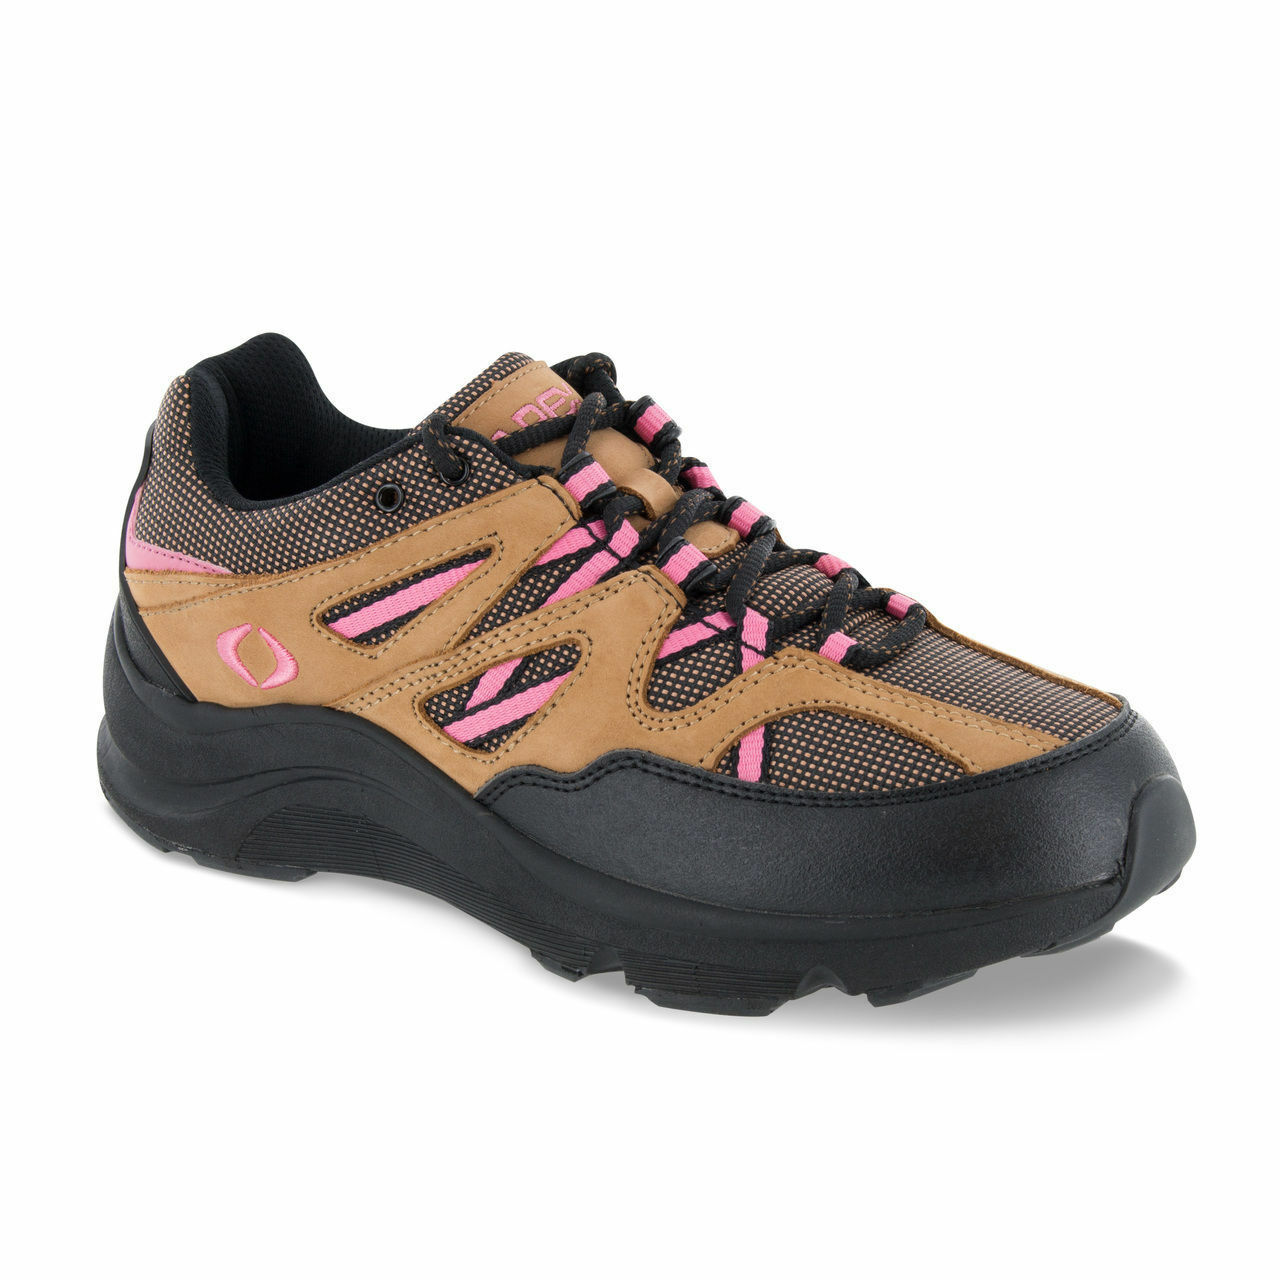 Apex Sierra Trail Runner V Last Brown Pink Diabetic shoes Extra Depth 9.5 W V752